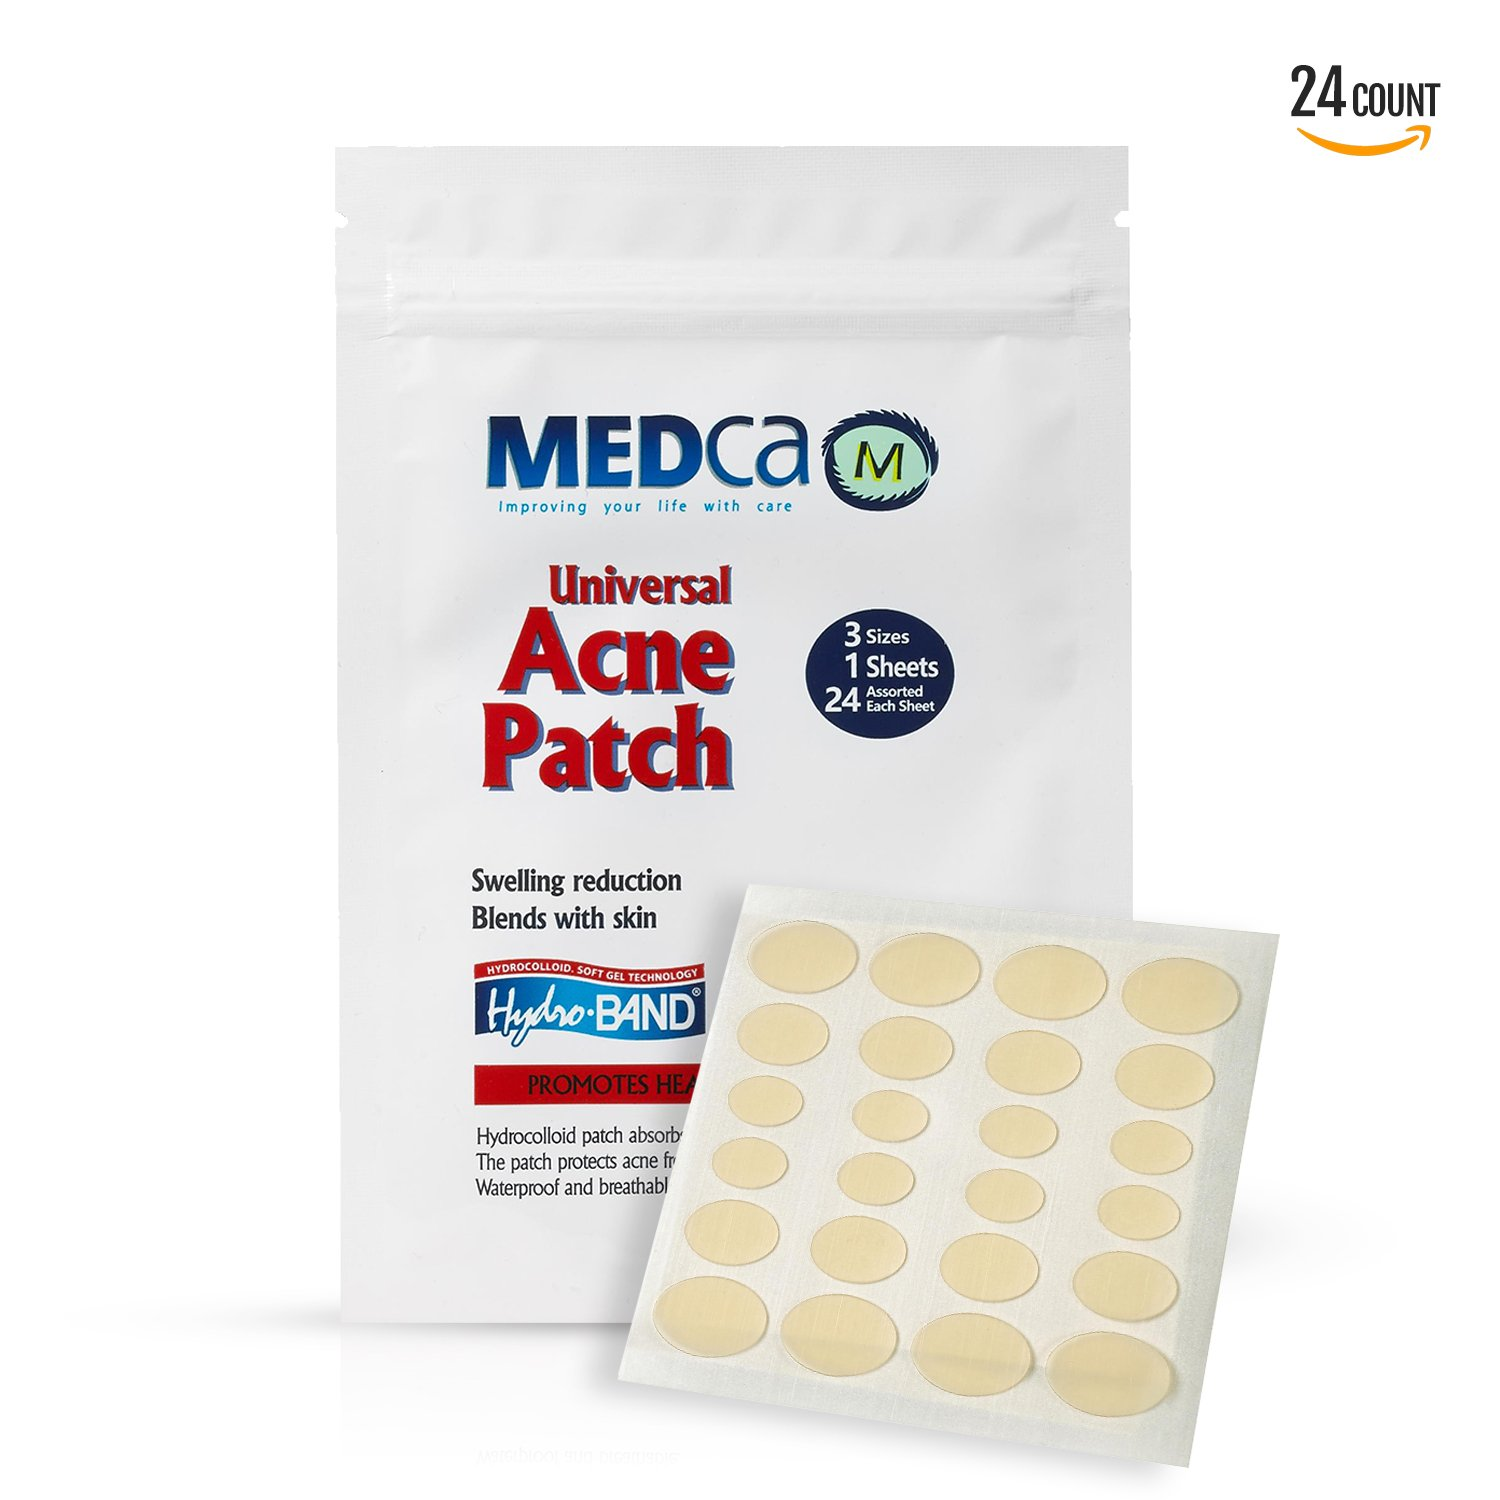 Acne Absorbing Covers - Hydrocolloid Acne Care Bandages (24 Count) Three Universal Patch Sizes, Acne Blemish Treatment for Face & Skin Spot Pore Patch that Conceals, Reduce Pimples and Blackheads MEDca